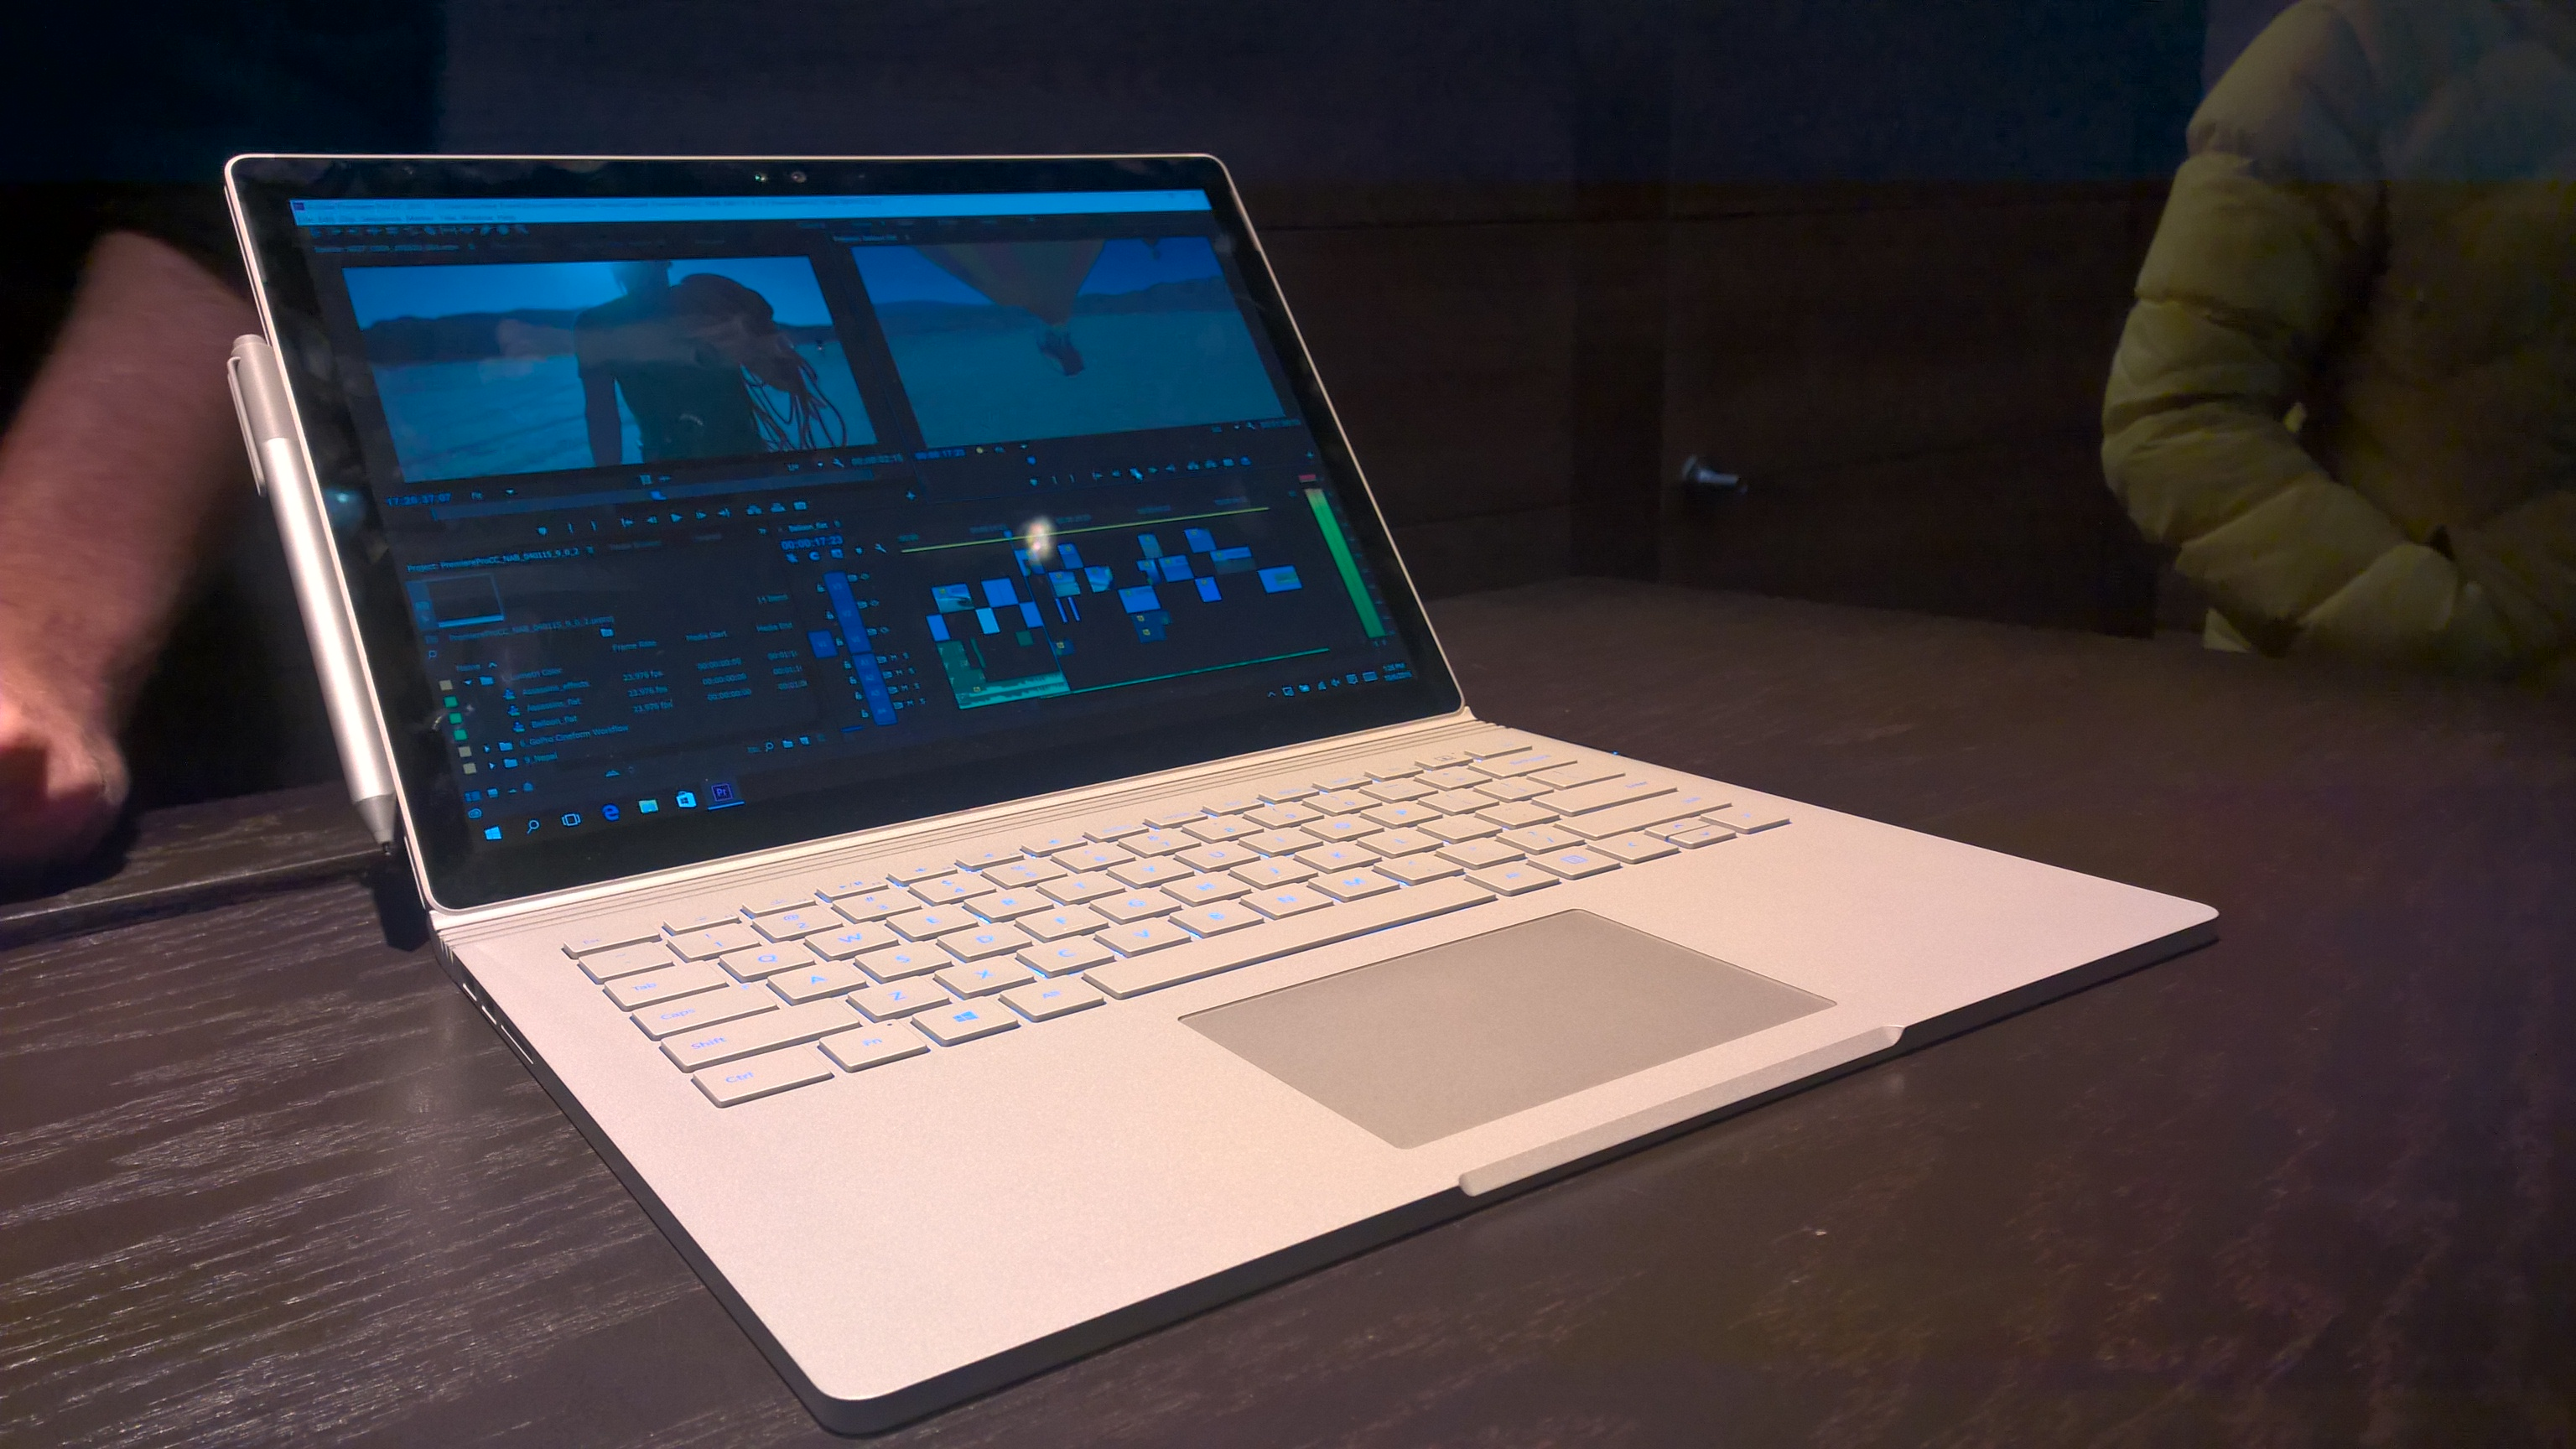 Last Minute Surface Book & Surface Pro 4 Release Date Tips